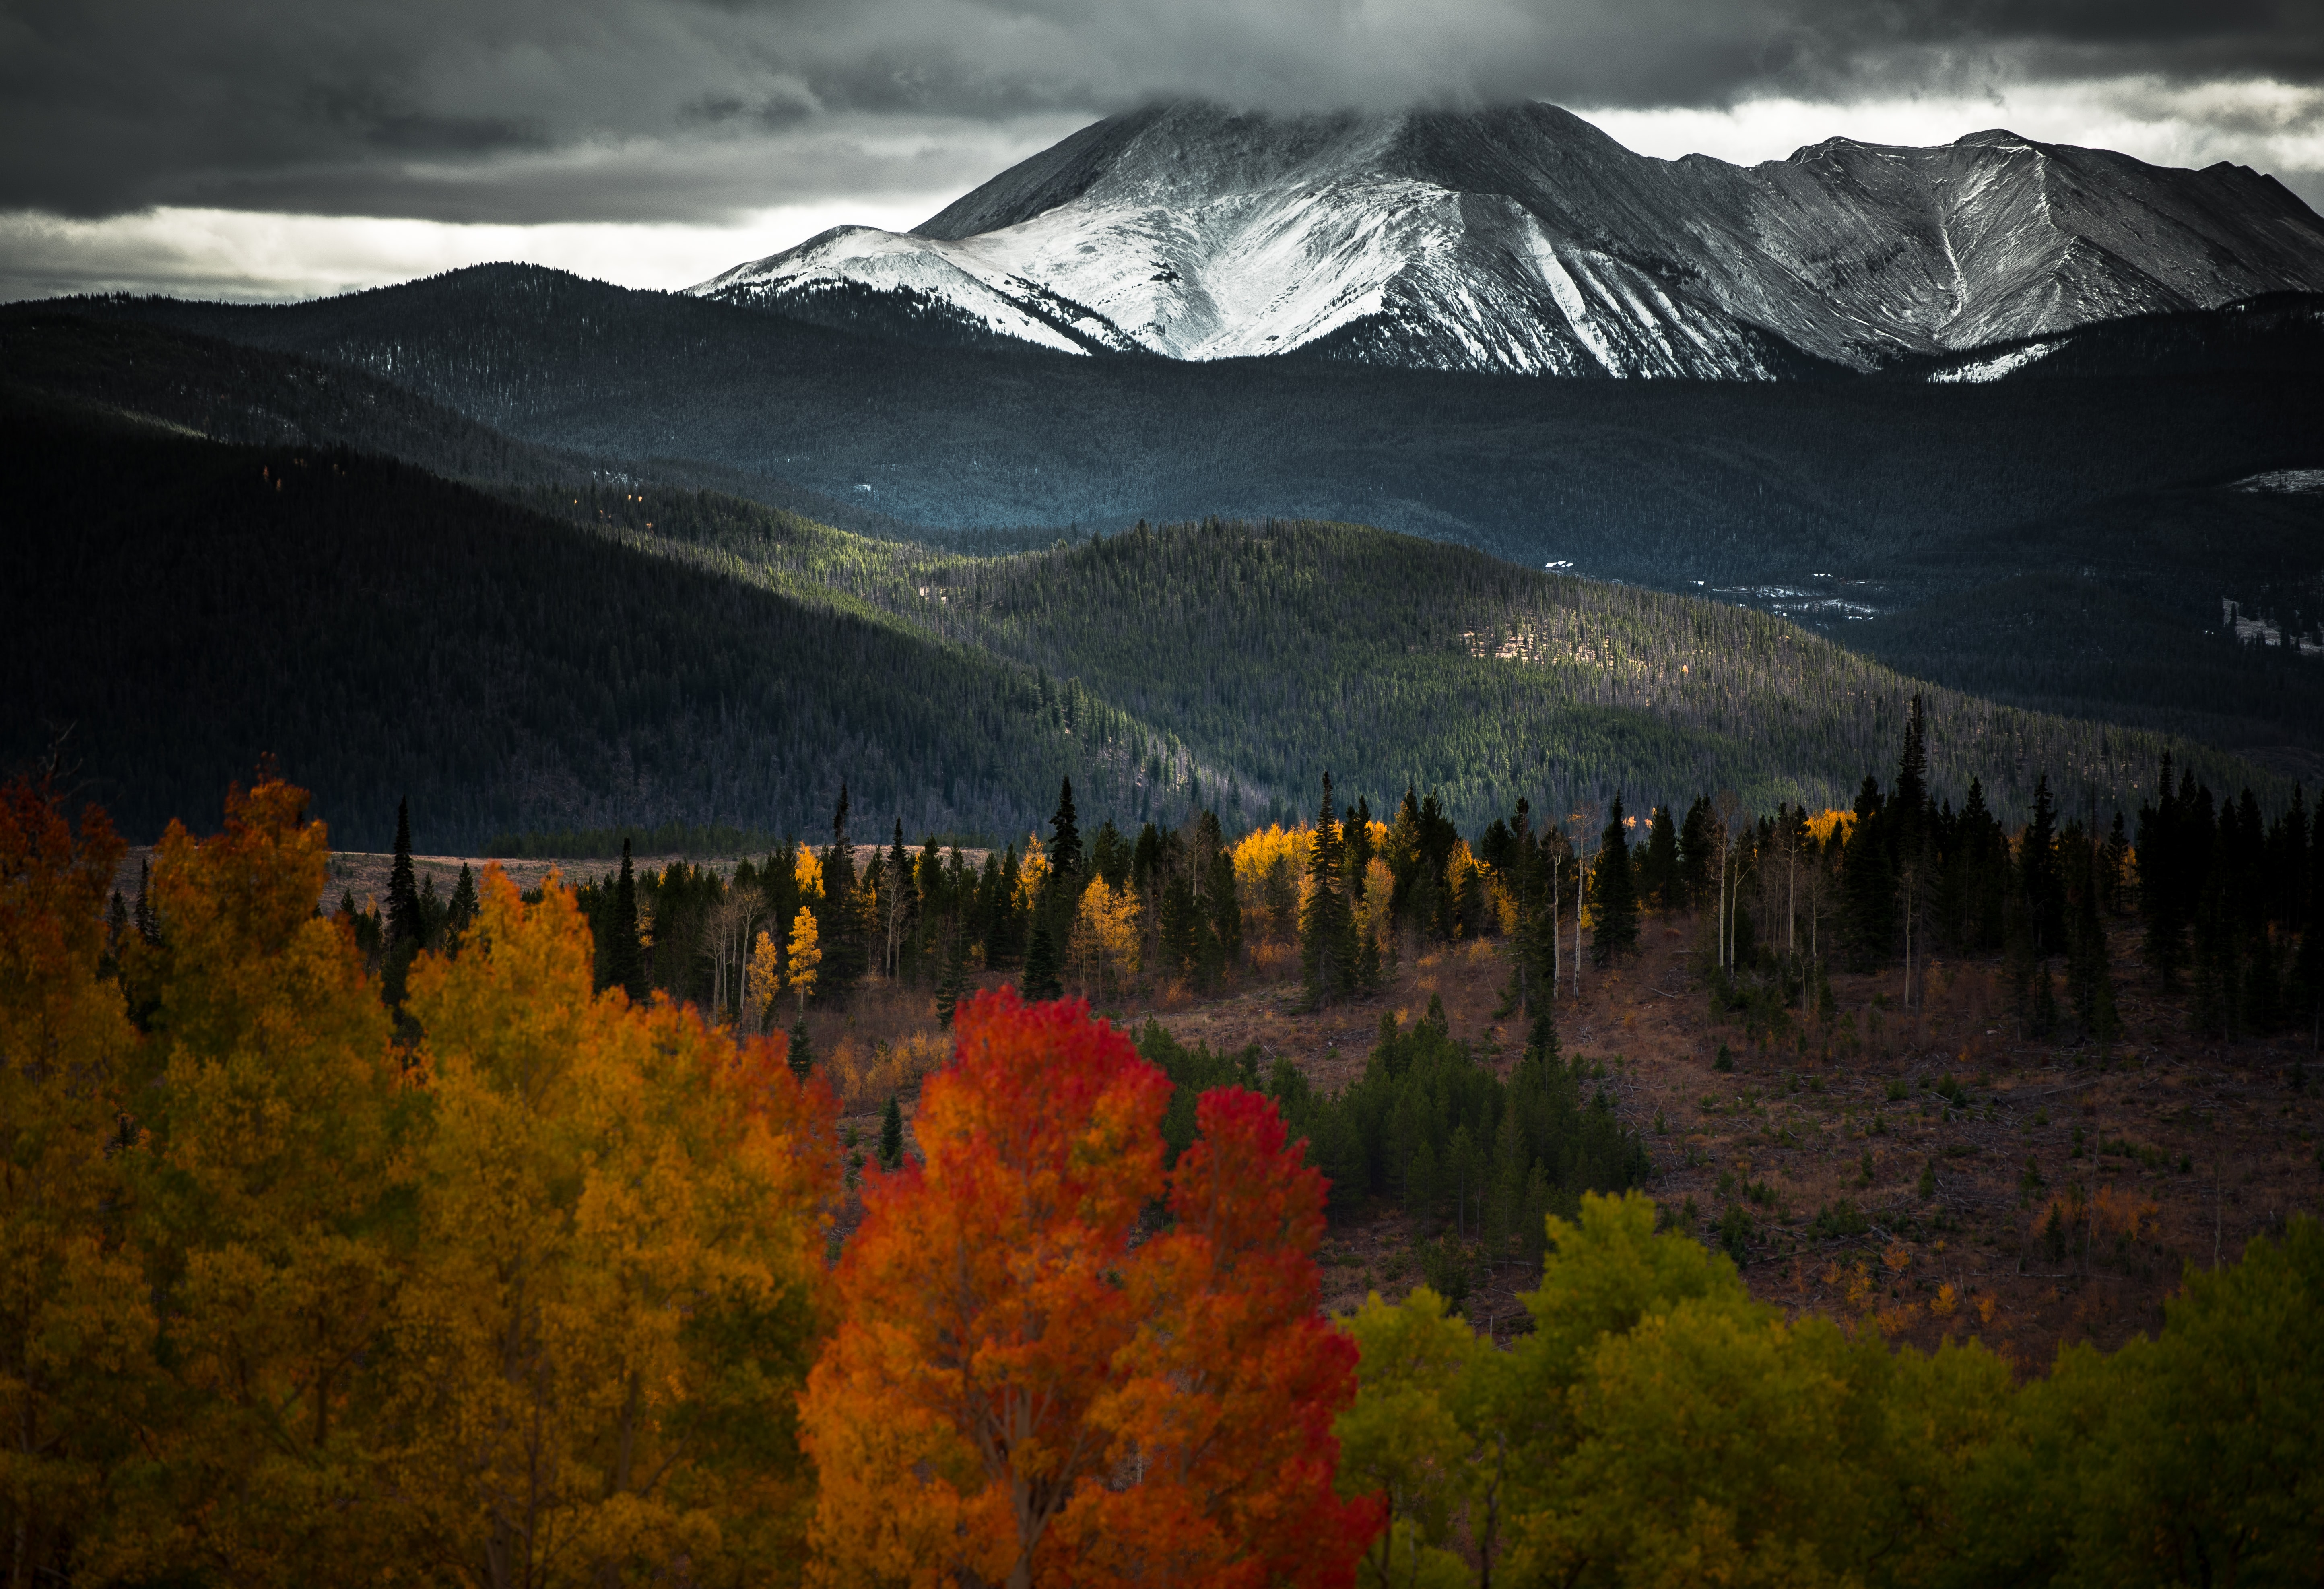 Colorful autumn trees and undulating hills near snow-capped mountains in Silverthorne